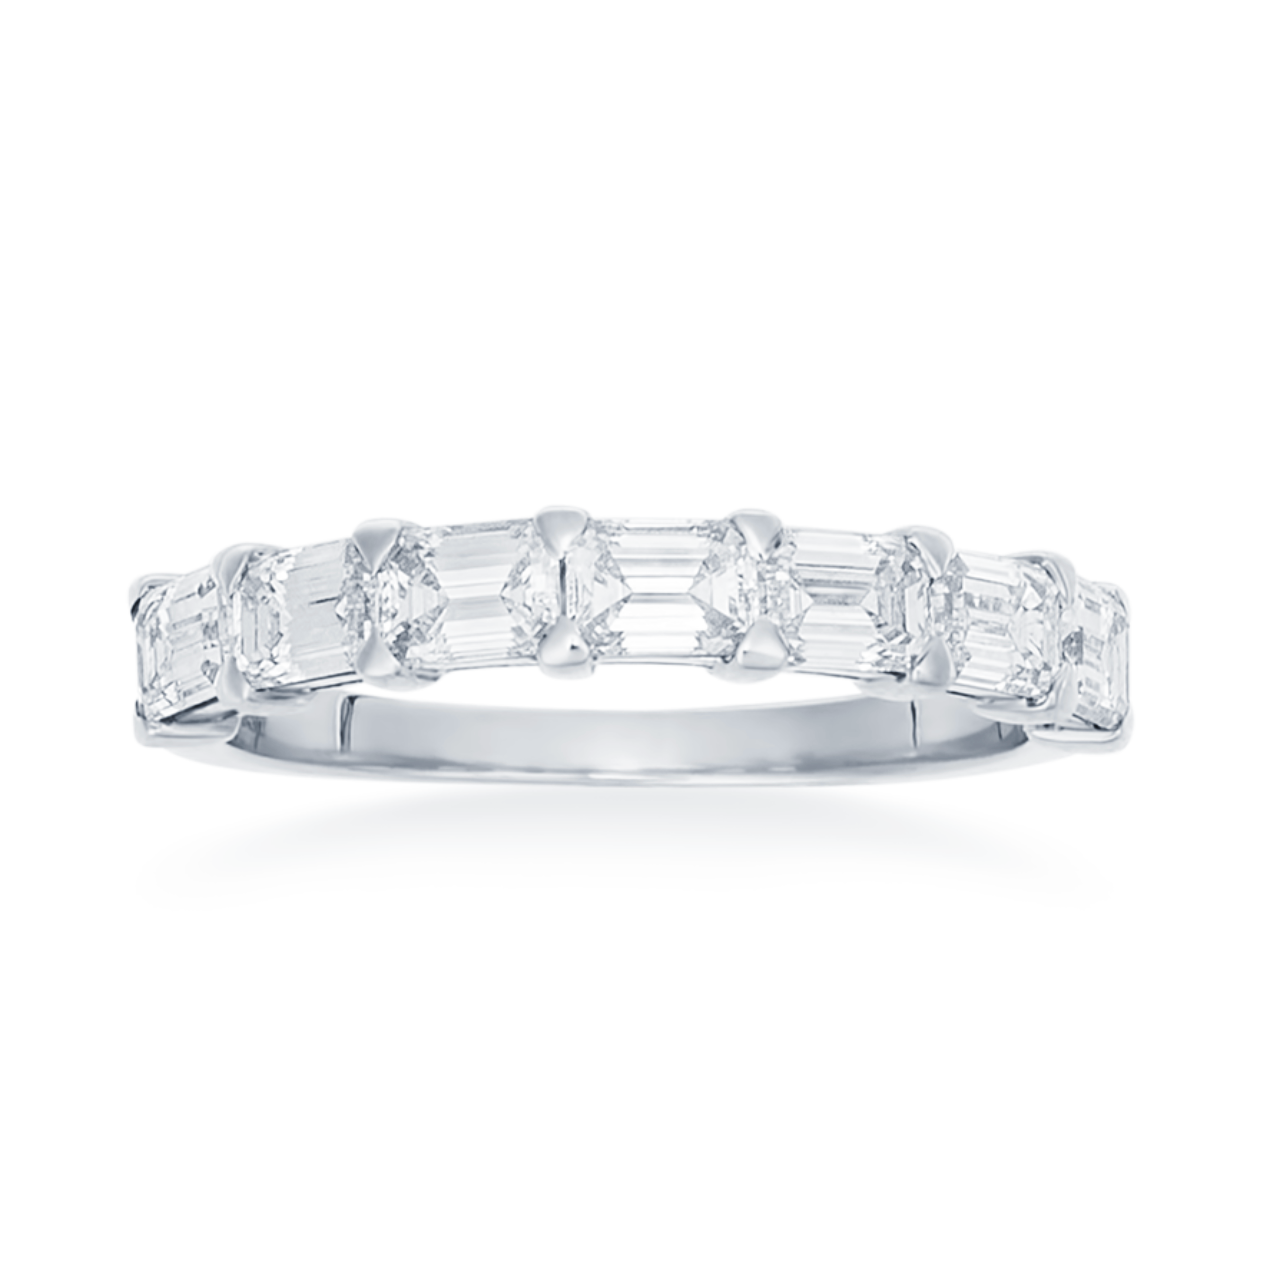 Emerald Cut East to West Prong Set Diamond Band